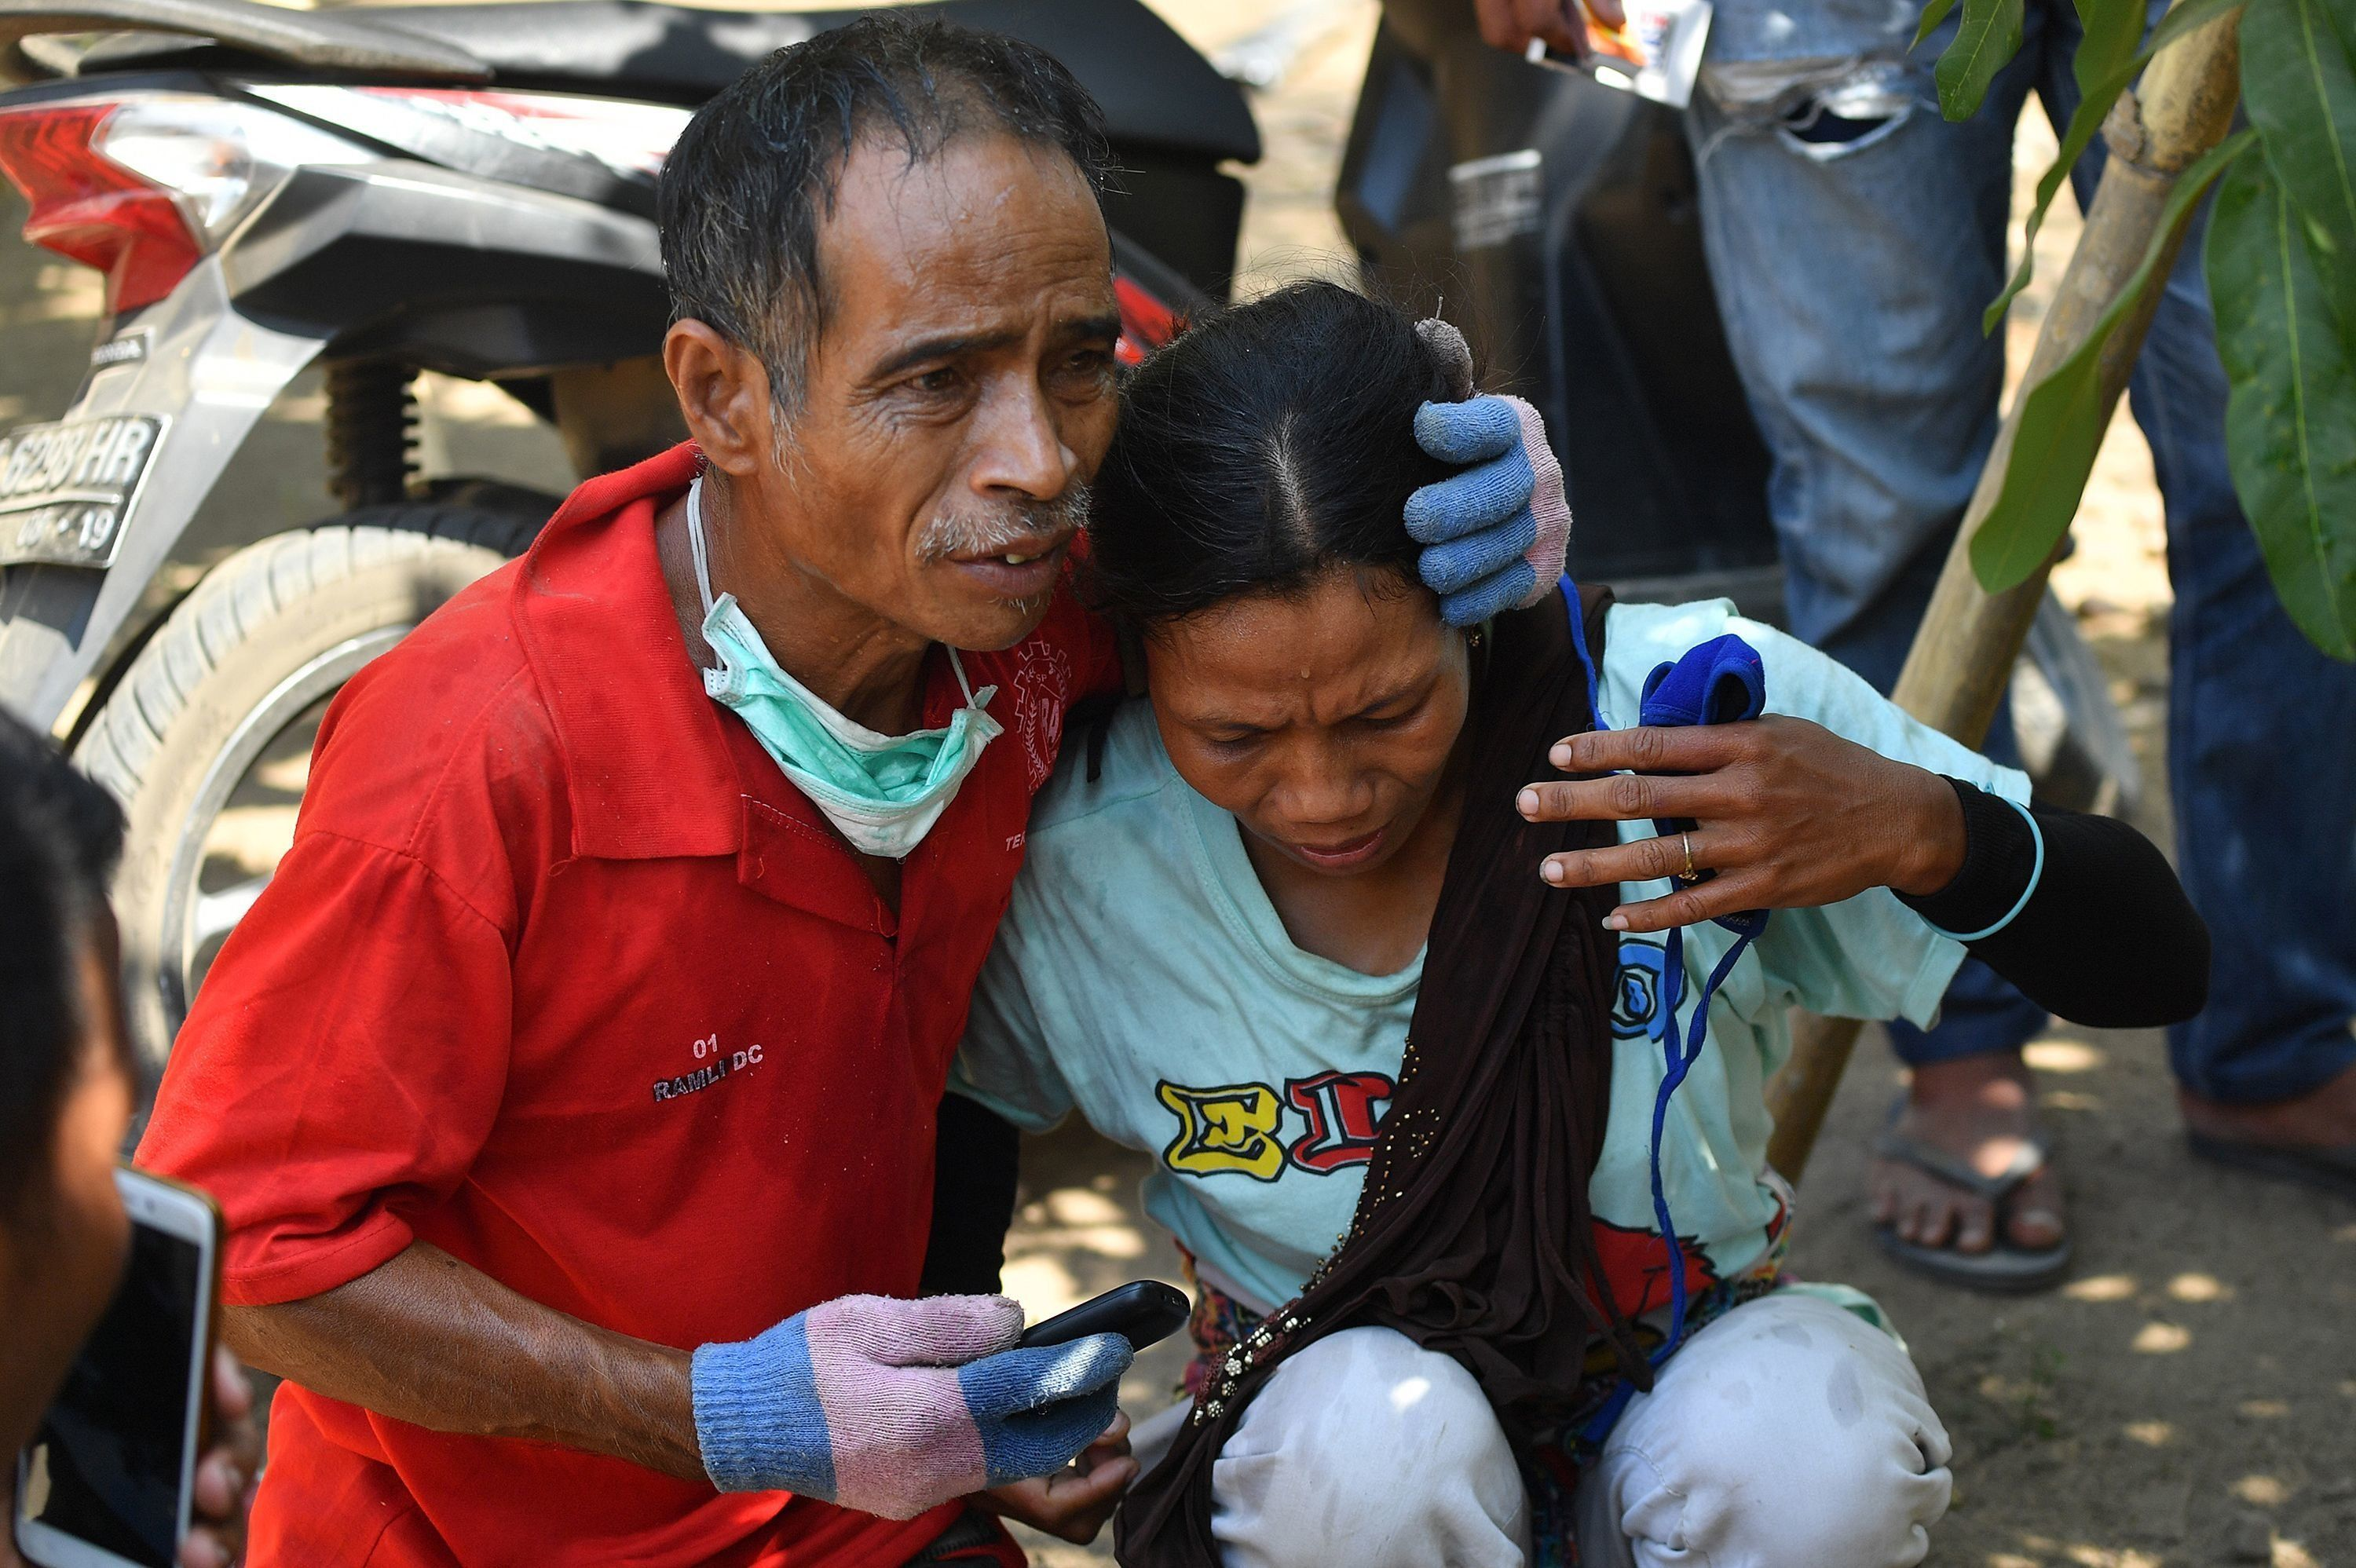 An Indonesian man tries to calm a woman after a strong aftershock hit Lombok island on Thursday.